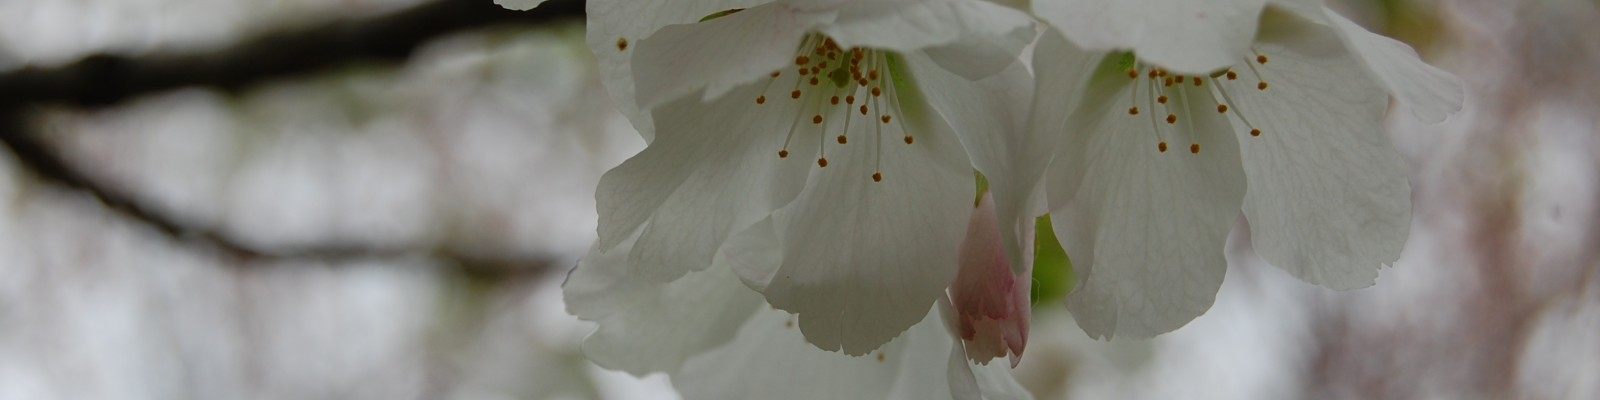 cropped-prunus-speciosa-flower.jpg